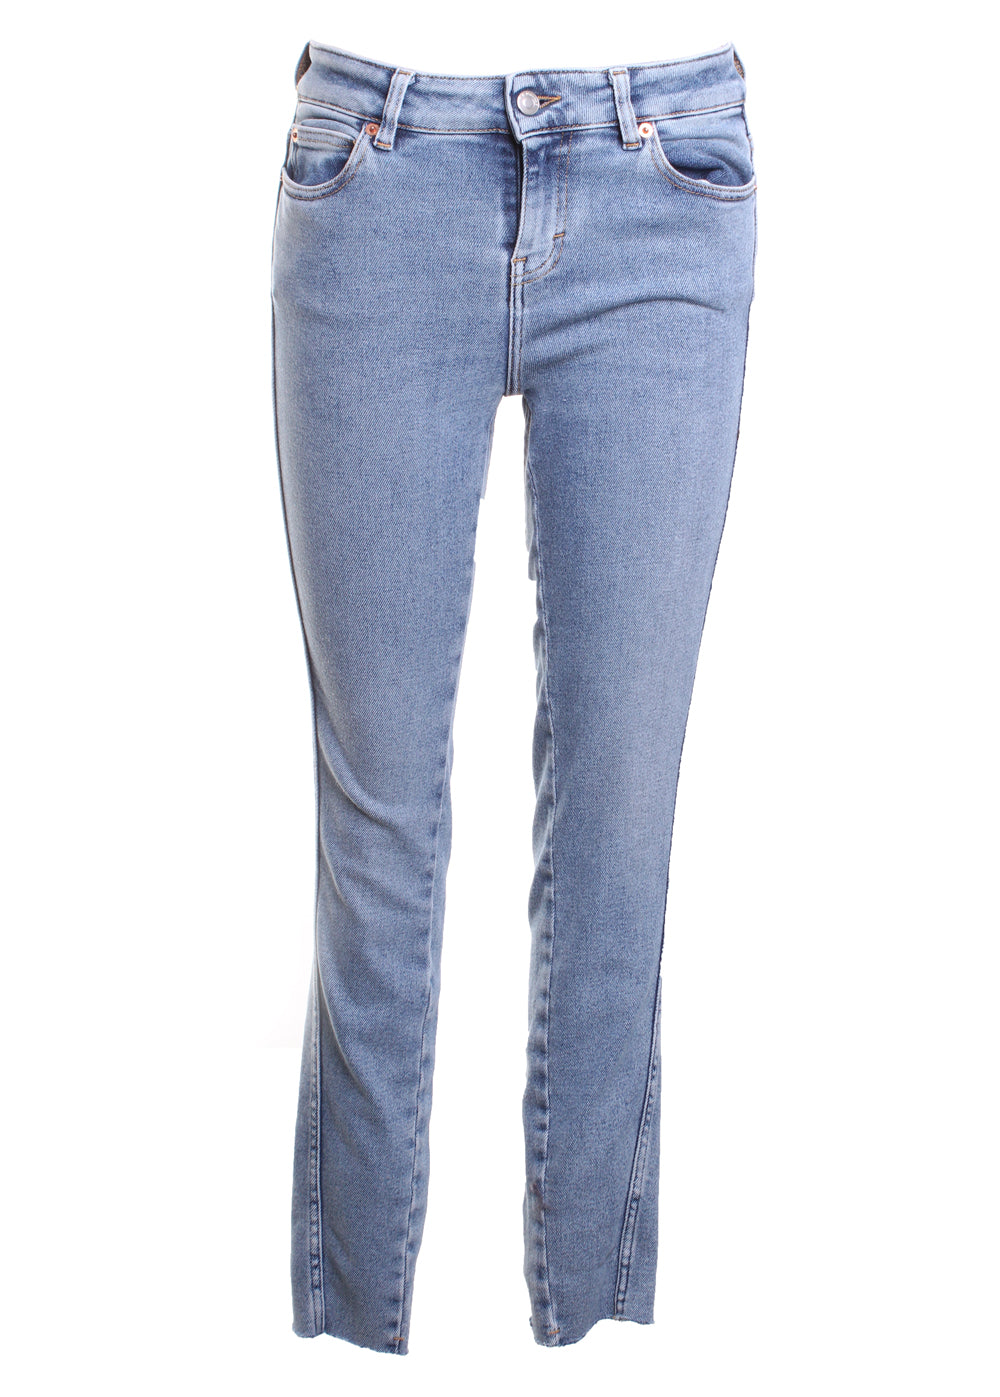 Fragile Denim Skinny Jeans in Light Denim